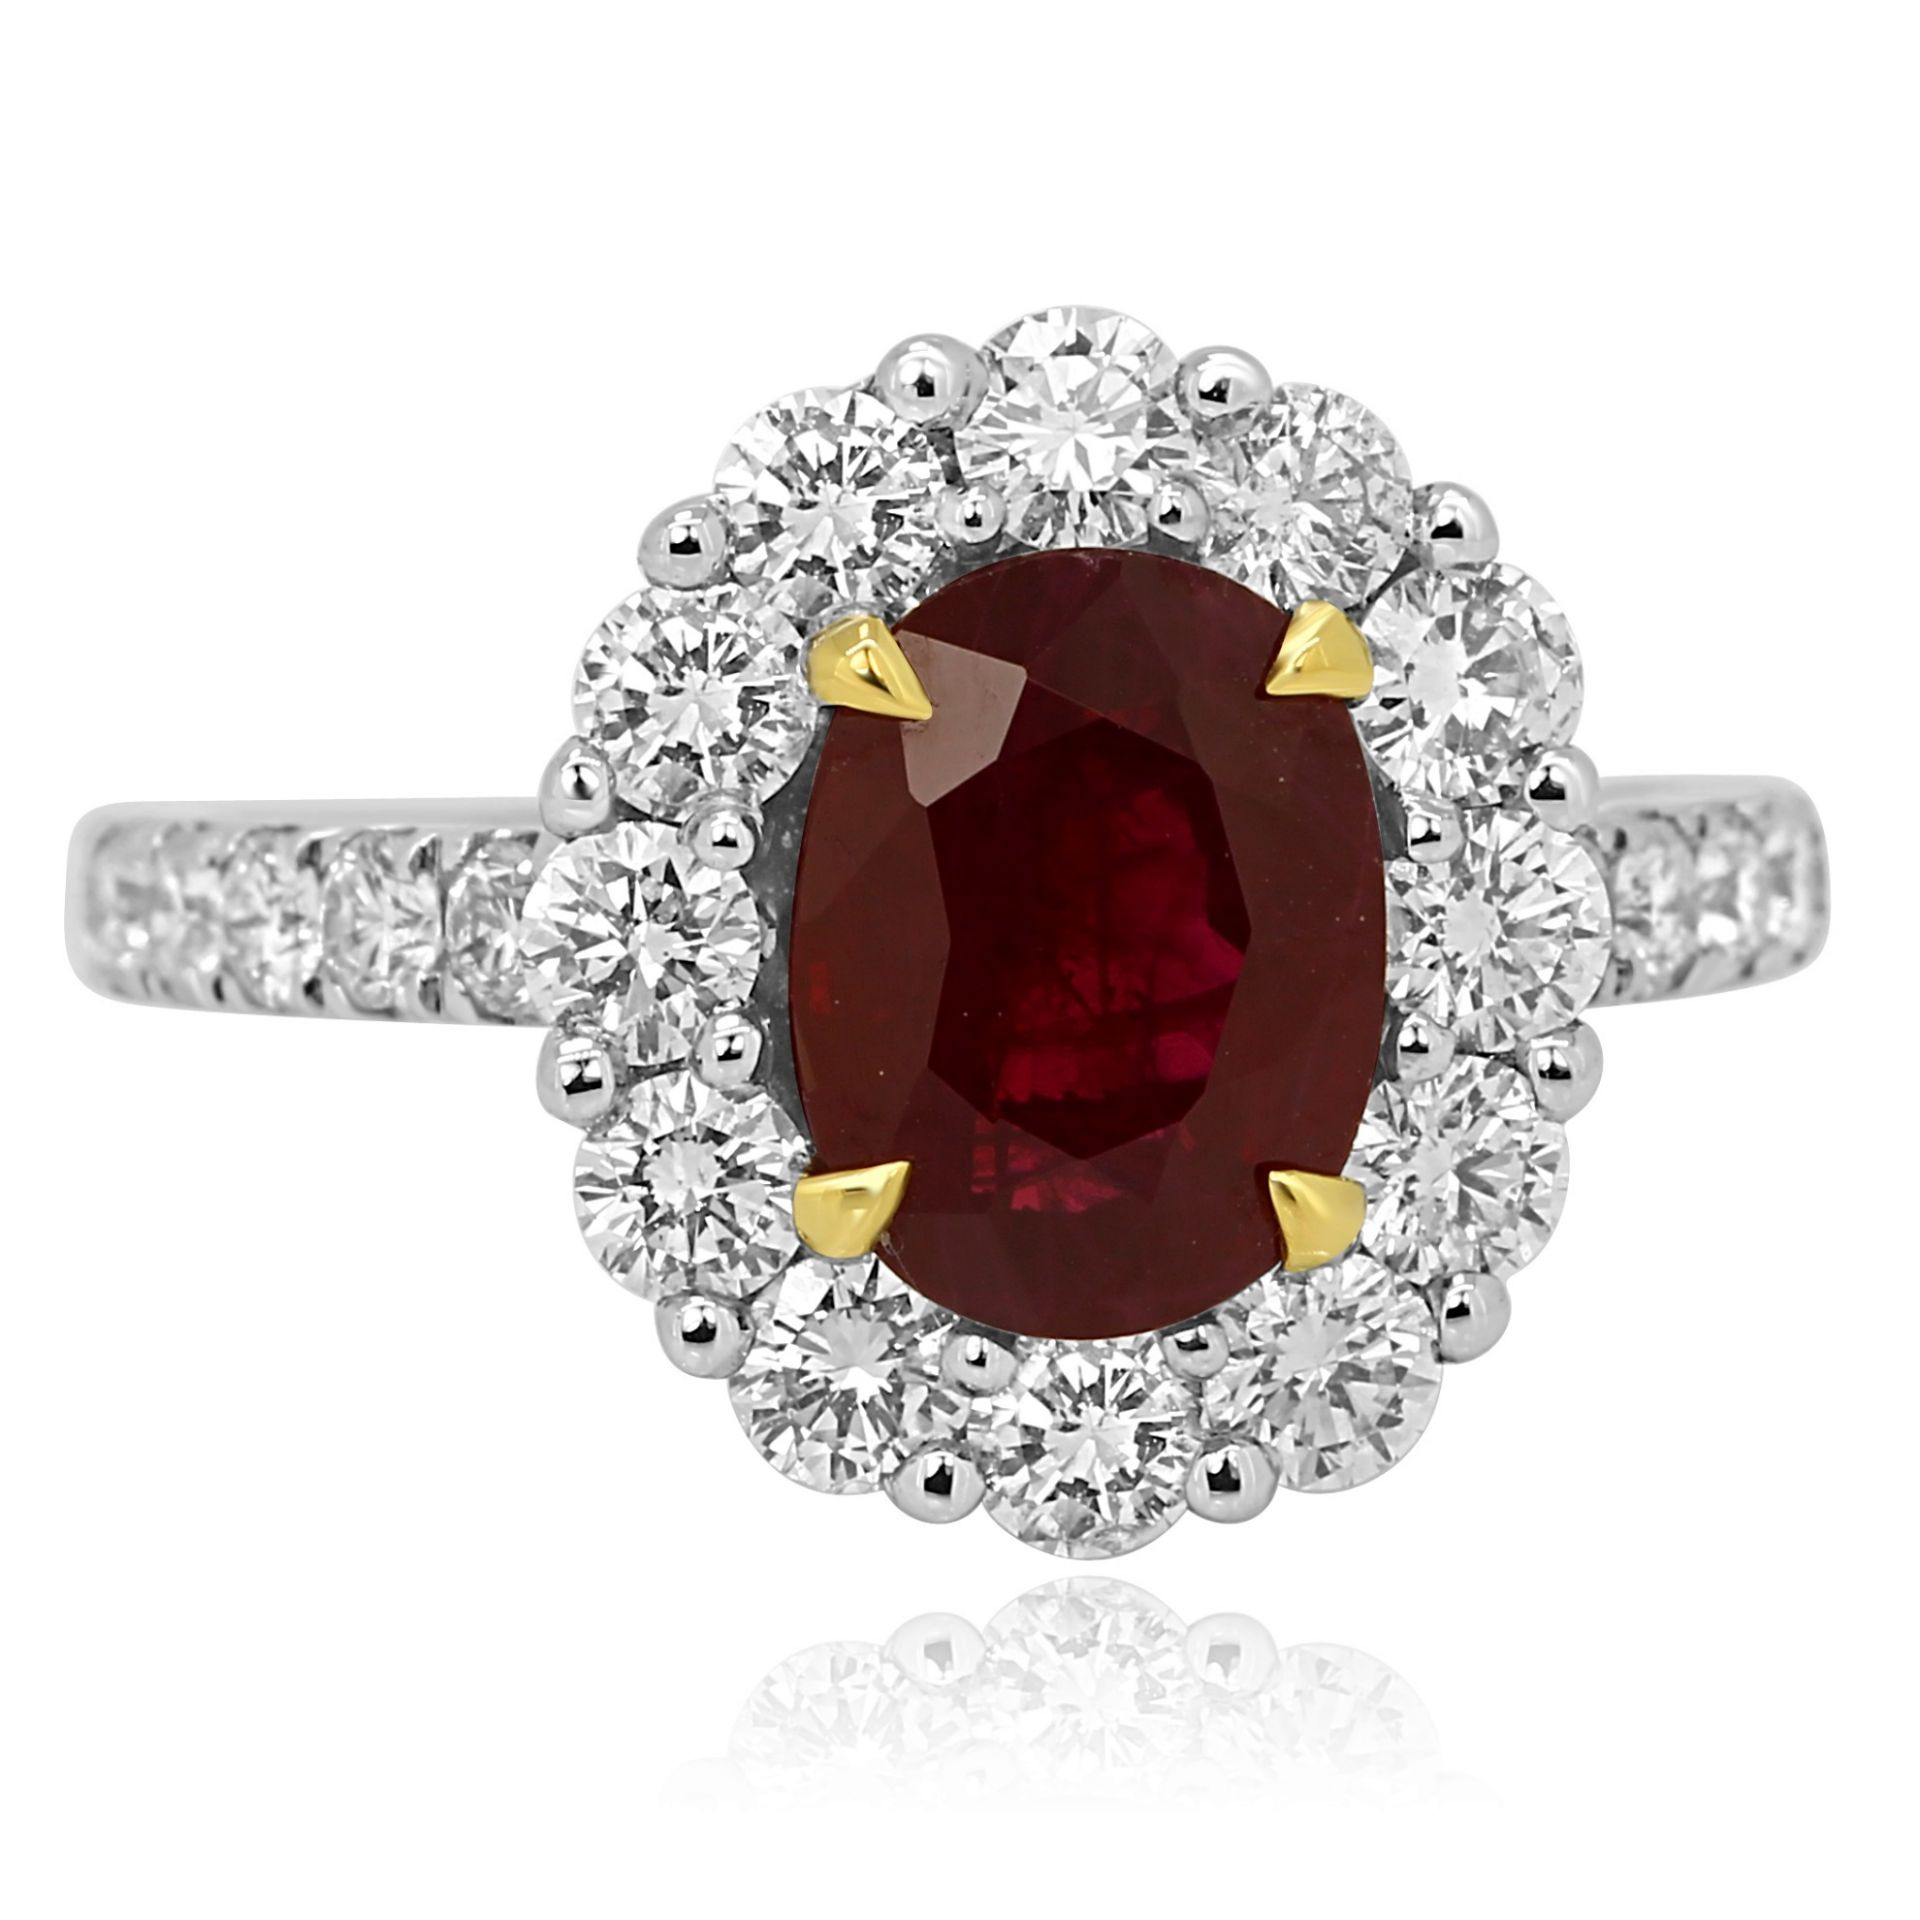 GIA Certified Burma Ruby Oval 2.48 Carat Single Halo Two Color Gold Bridal